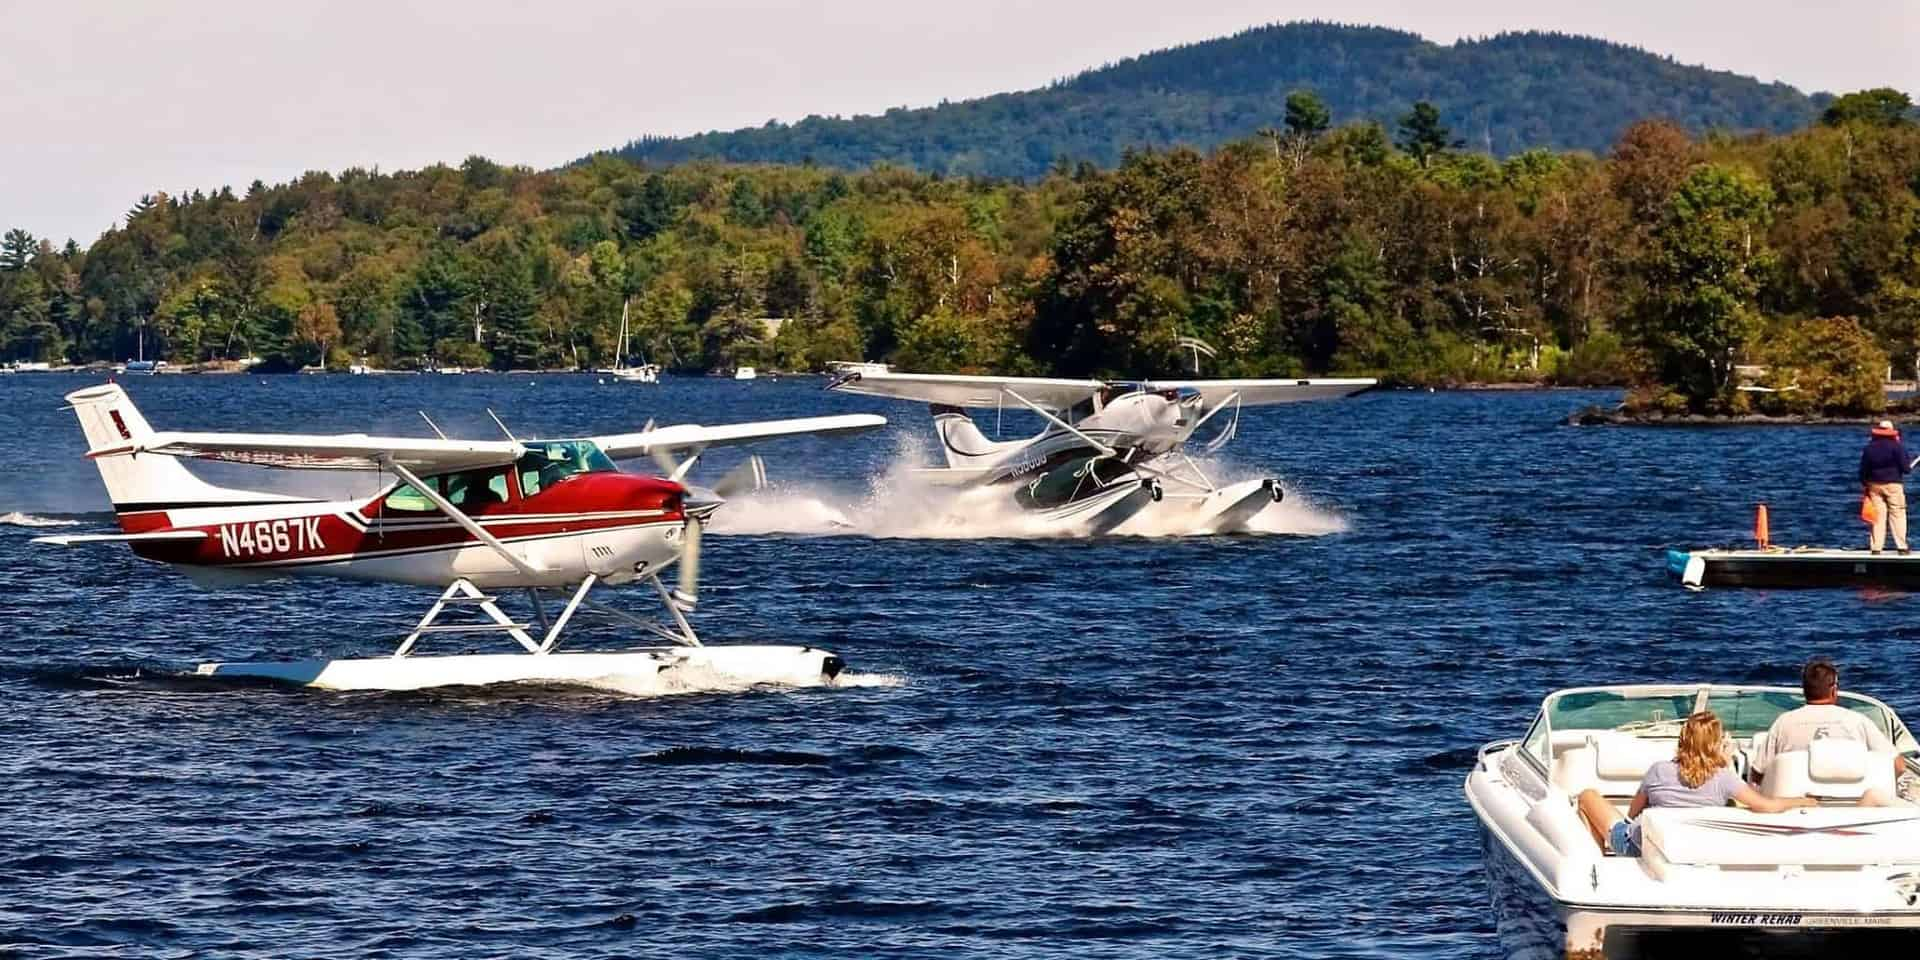 Light airplanes on the water